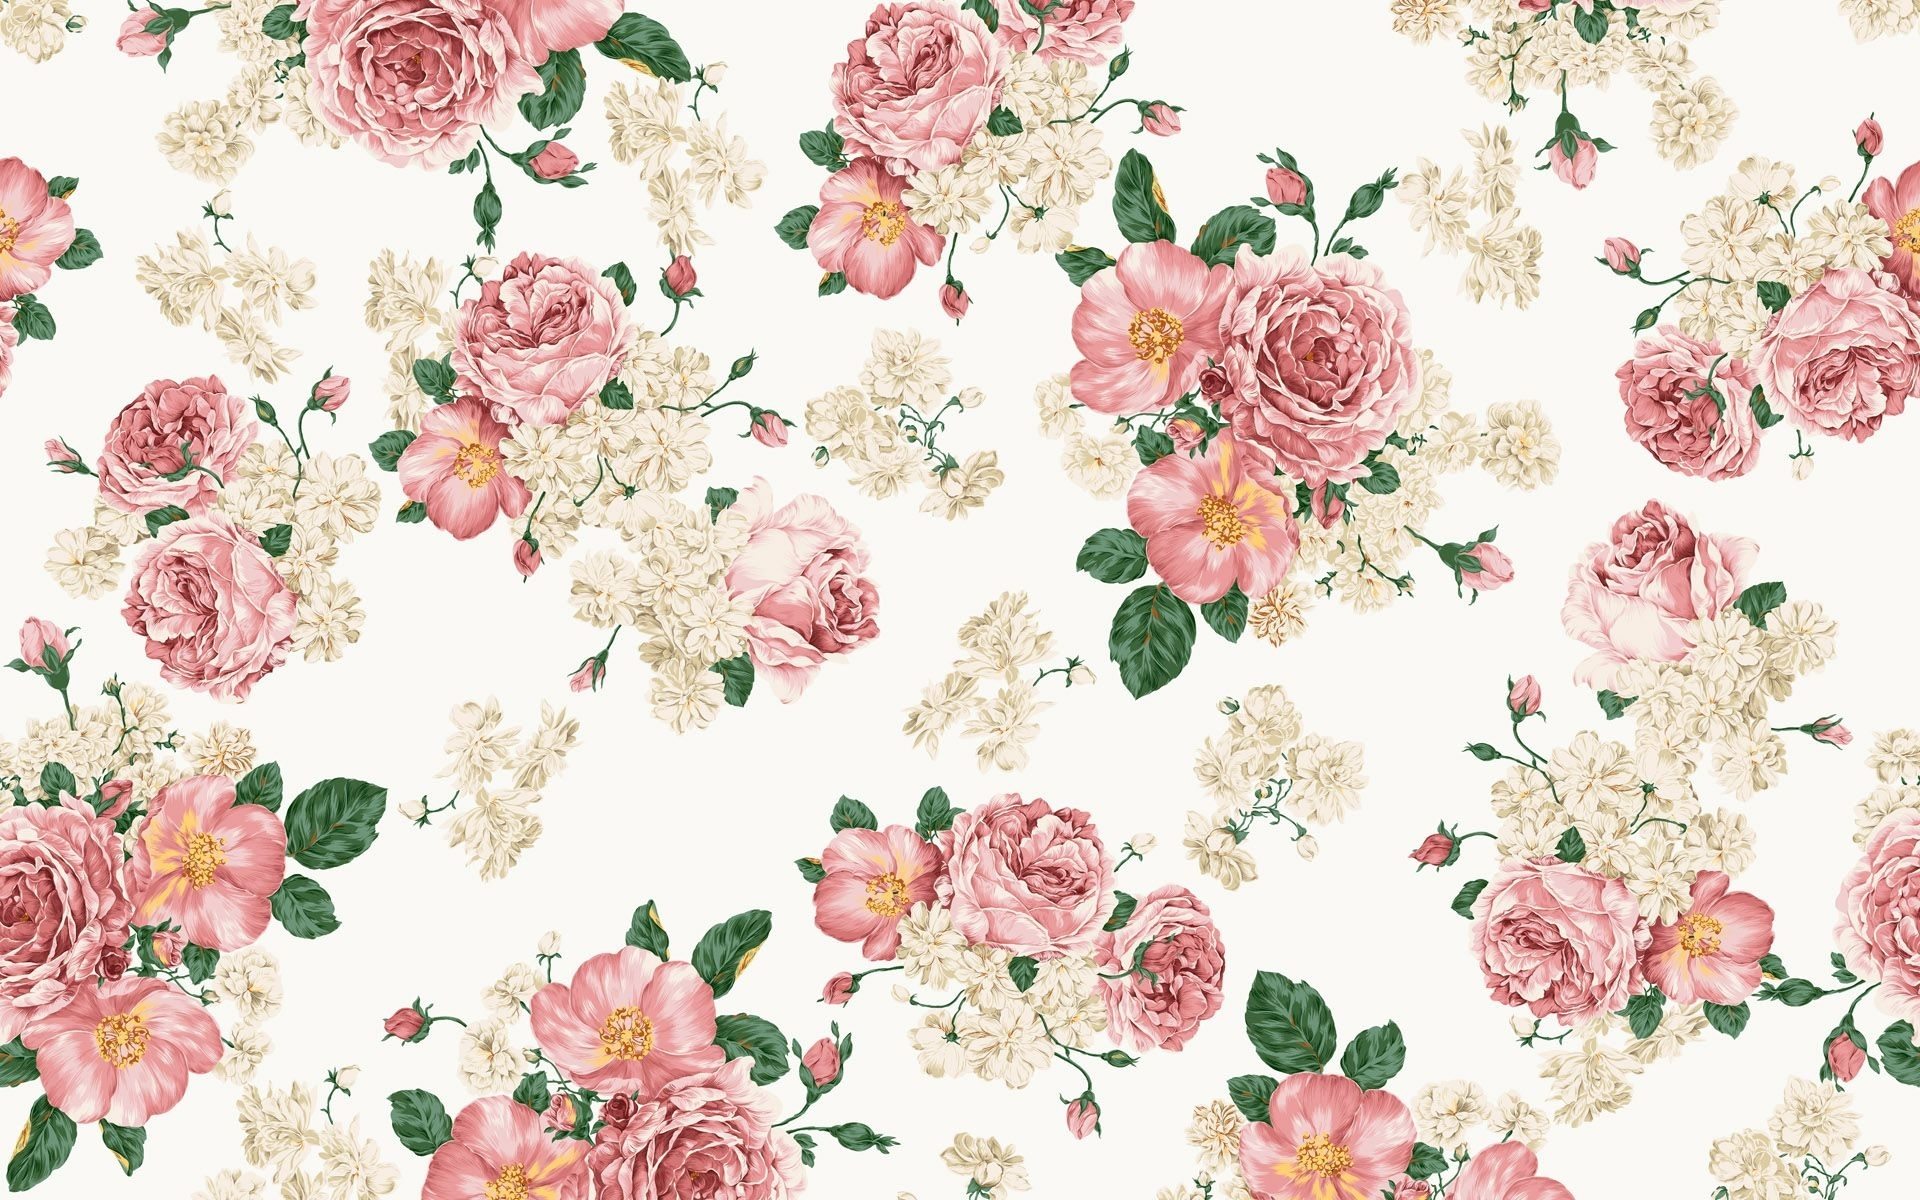 flower pattern design wallpaper high resolution with hd desktop